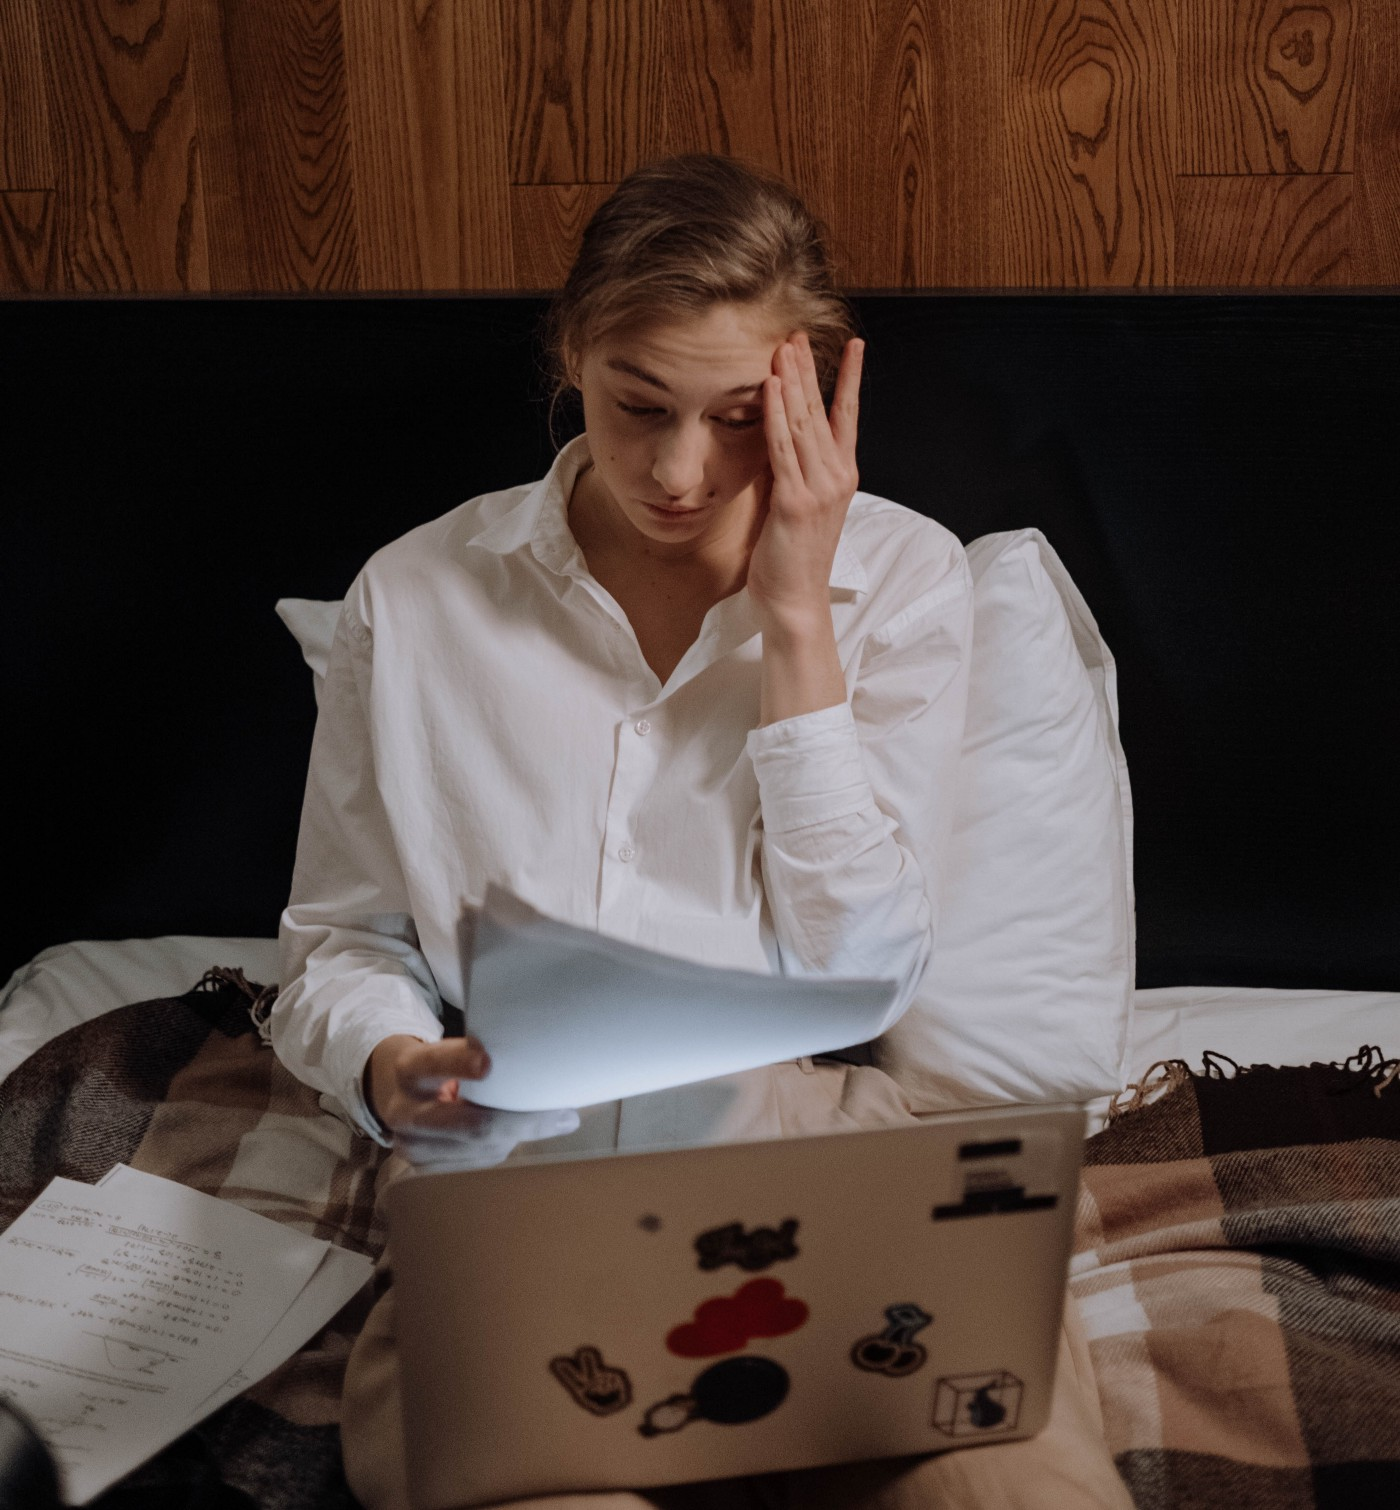 How I've Learned to Handle the 'Trough of Sorrow' as an Entrepreneur